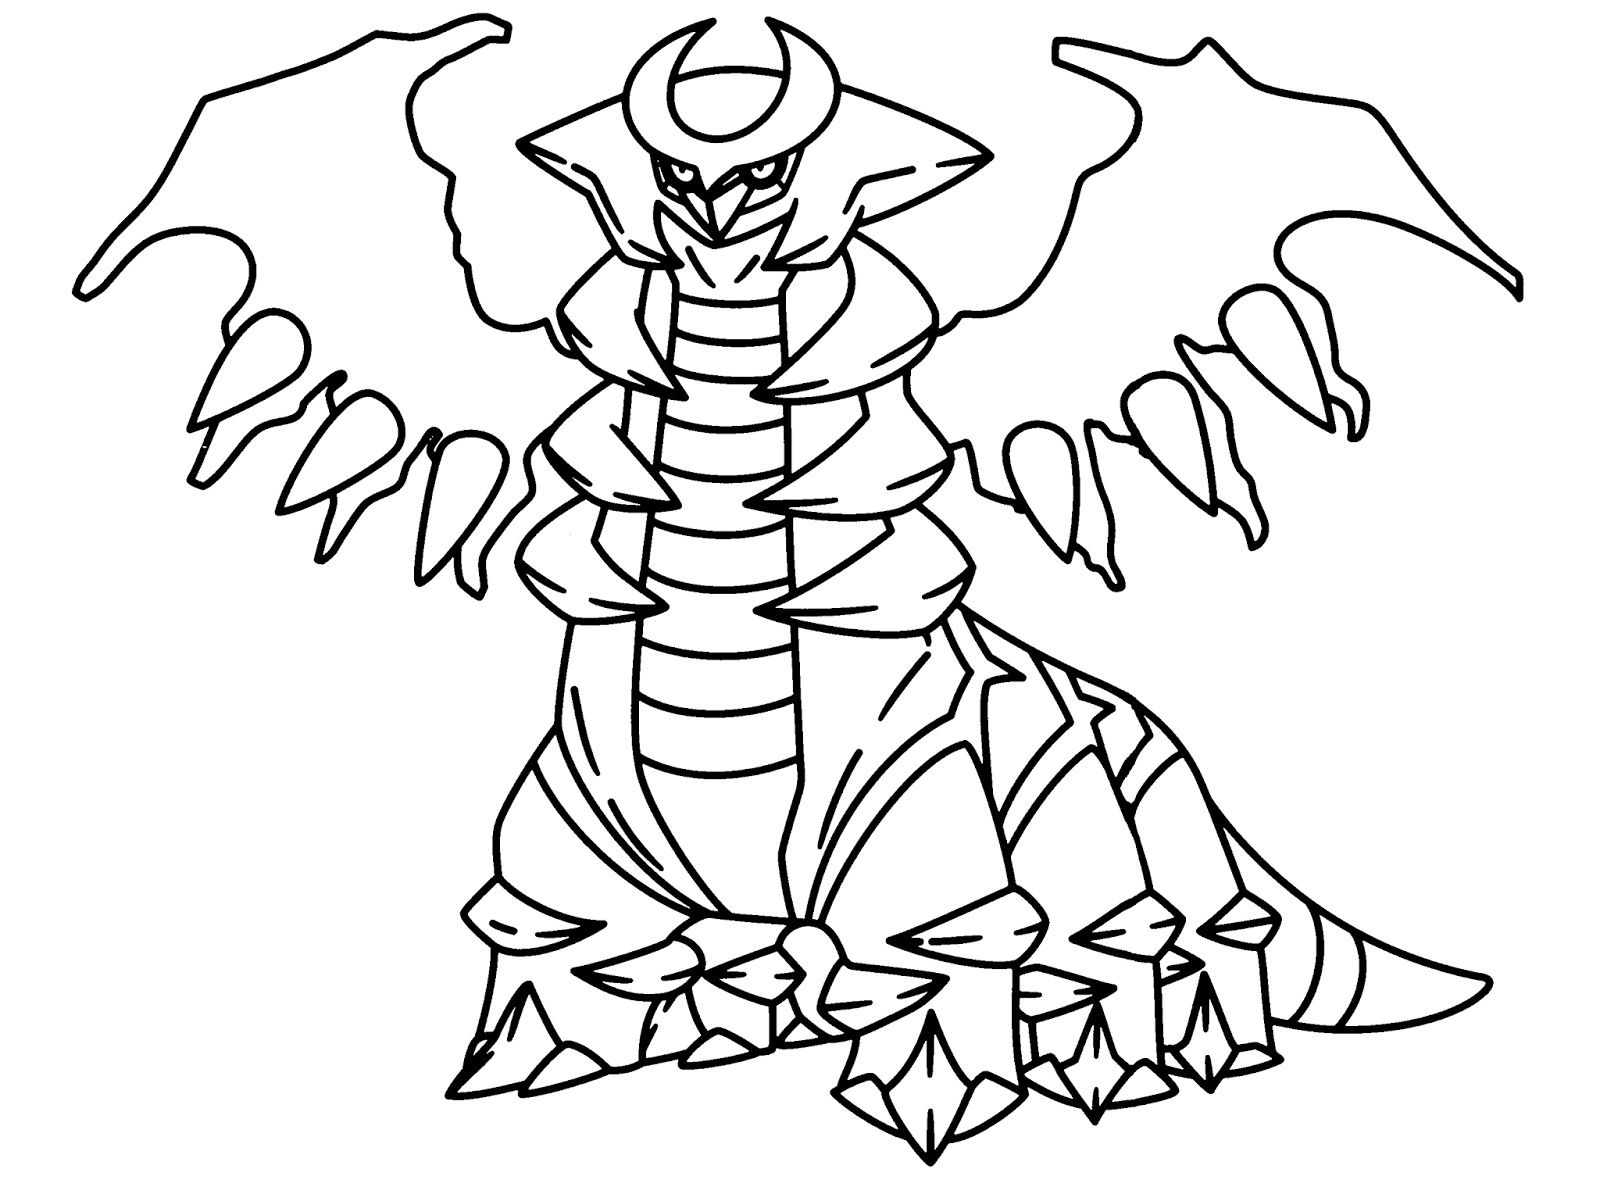 coloring sheet pokemon 55 pokemon coloring pages for kids pokemon coloring sheet